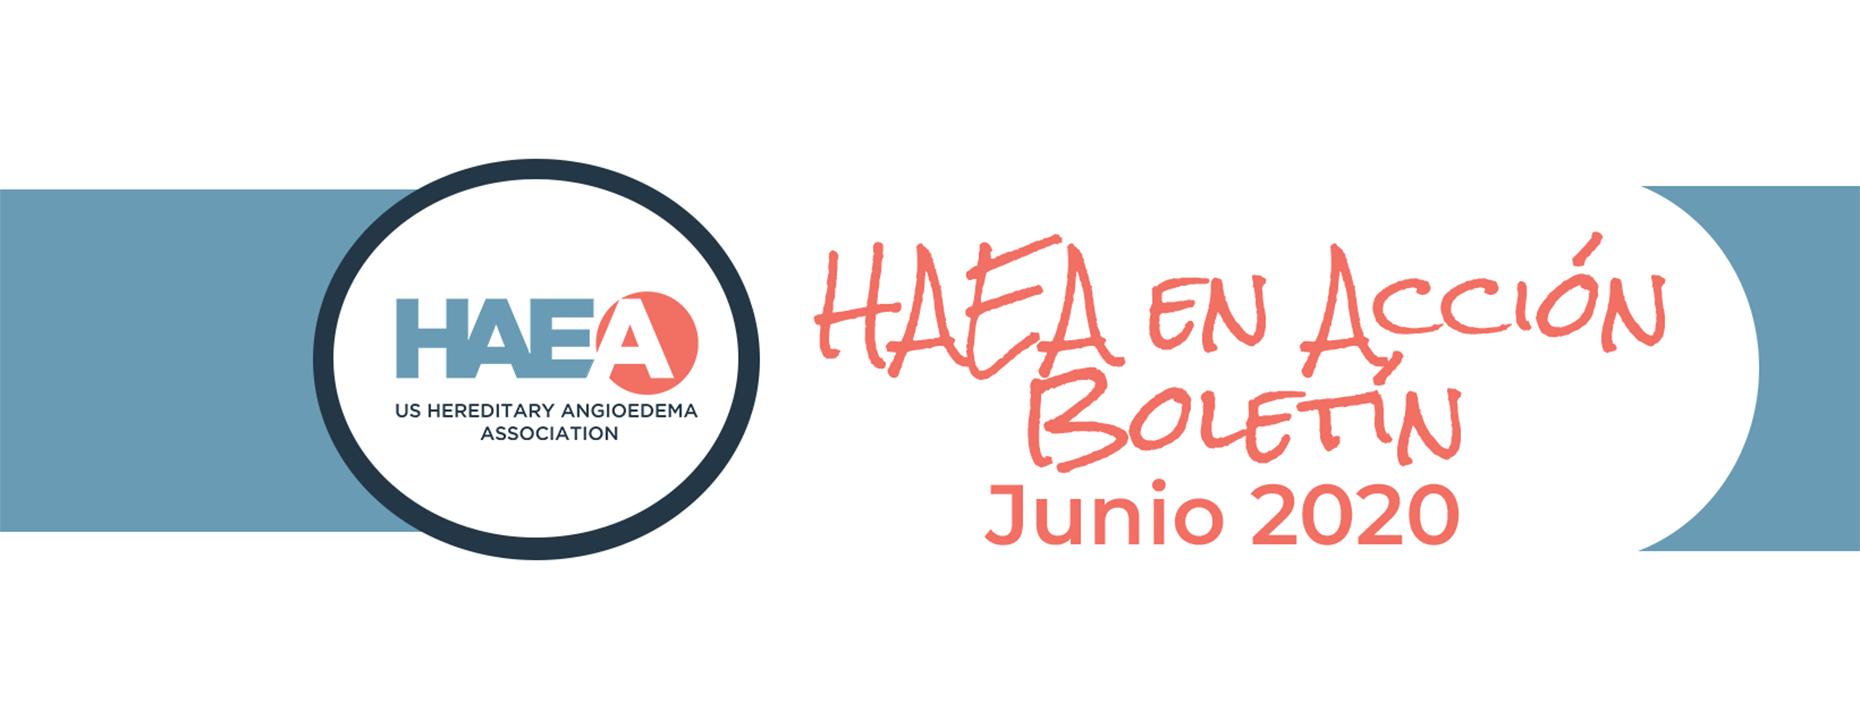 SPA HAEA in Action July 2020 Newsletter